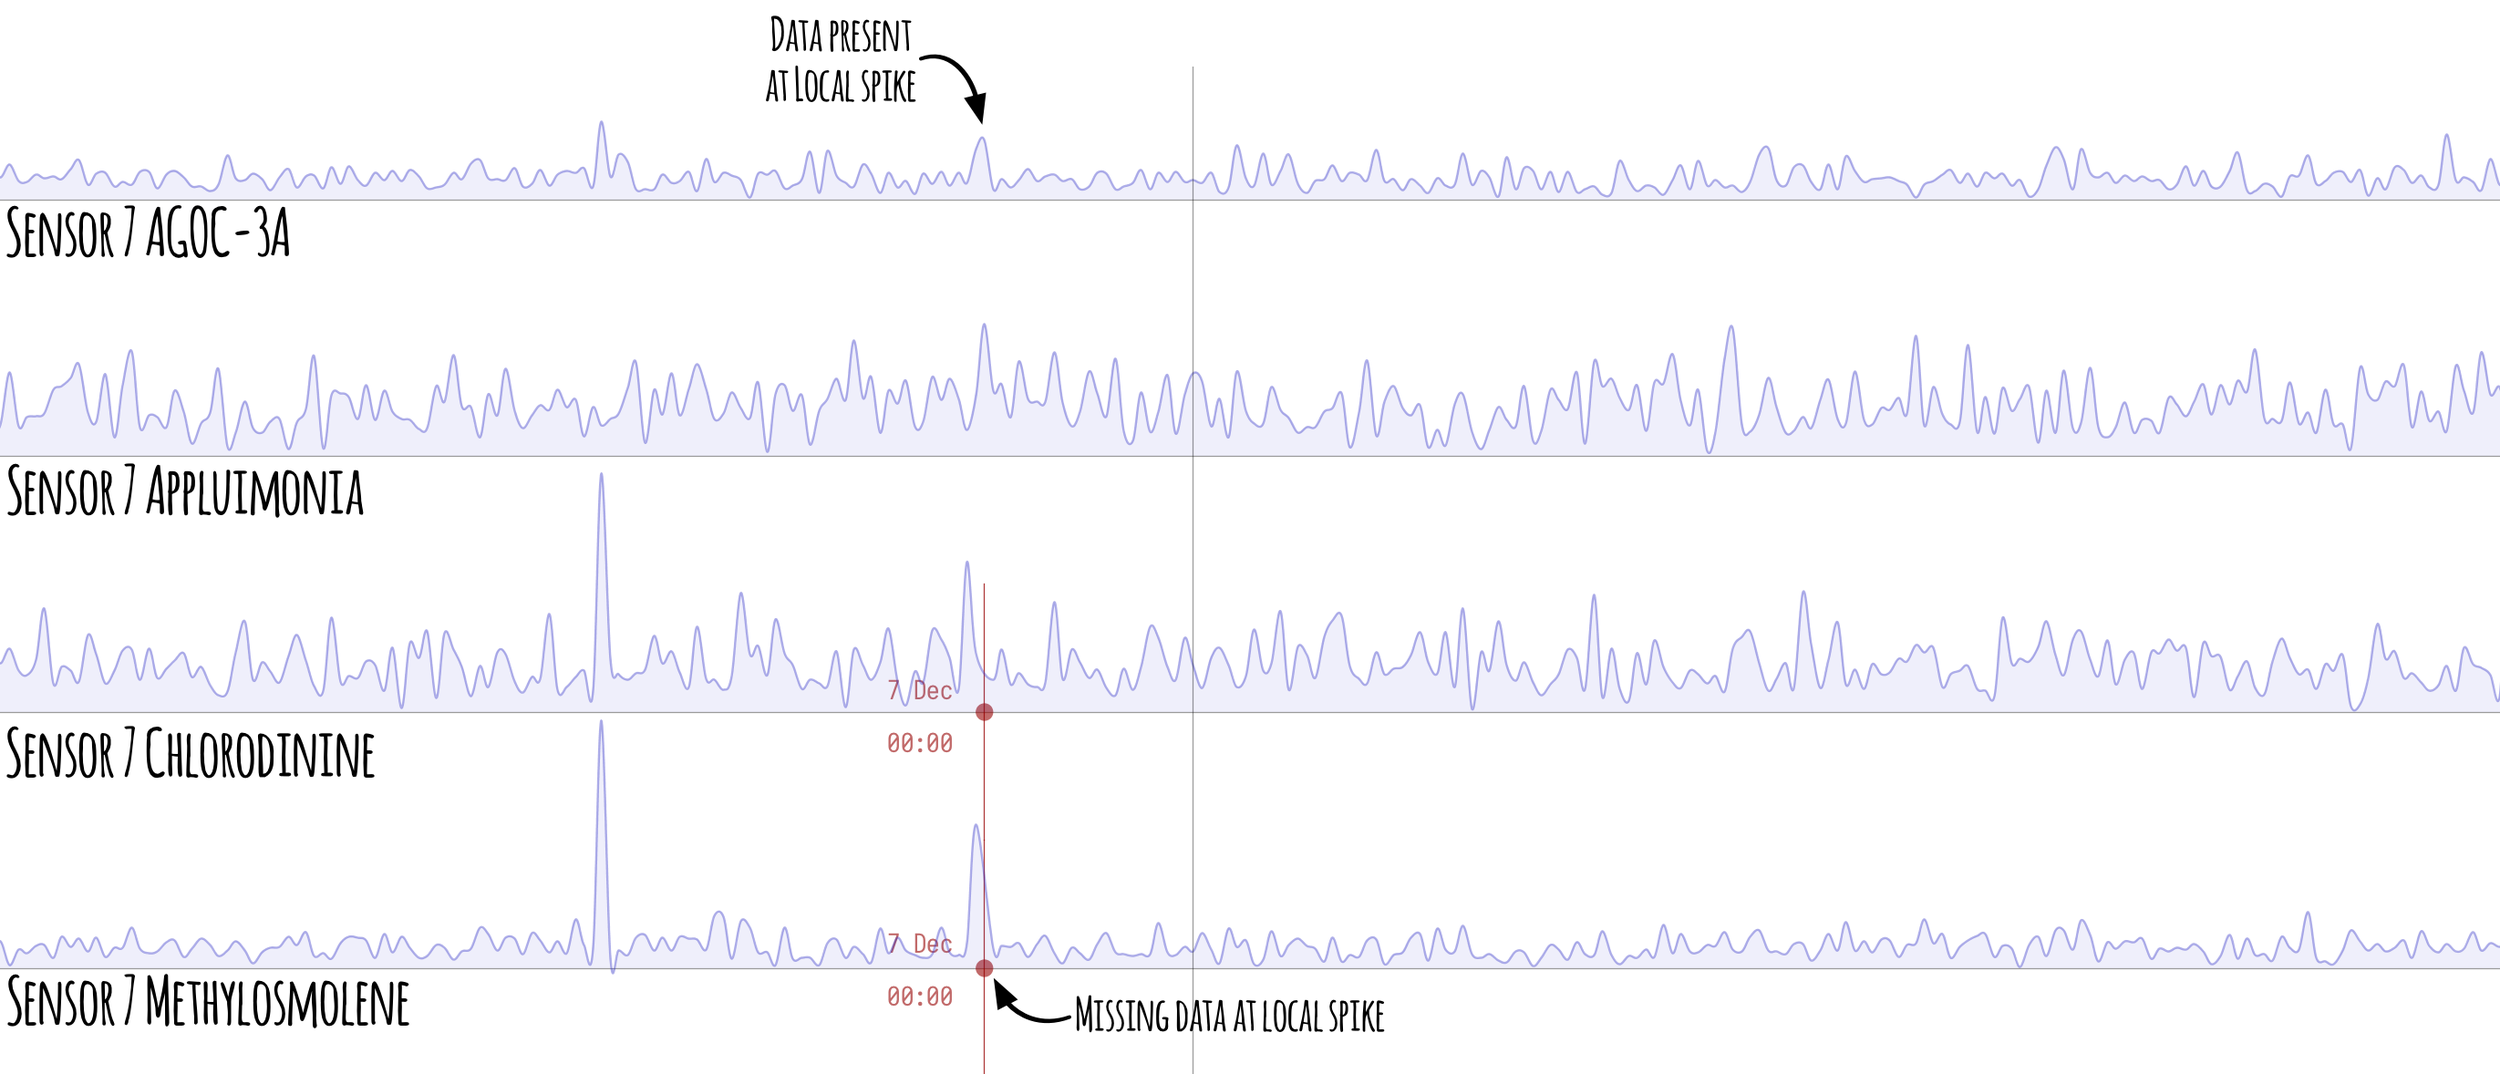 Figure 5  -Zoomed in Sensor 7 chart showing the AGOC-3A exception to 7th December data gap coincides with spike in Methylosmolene.